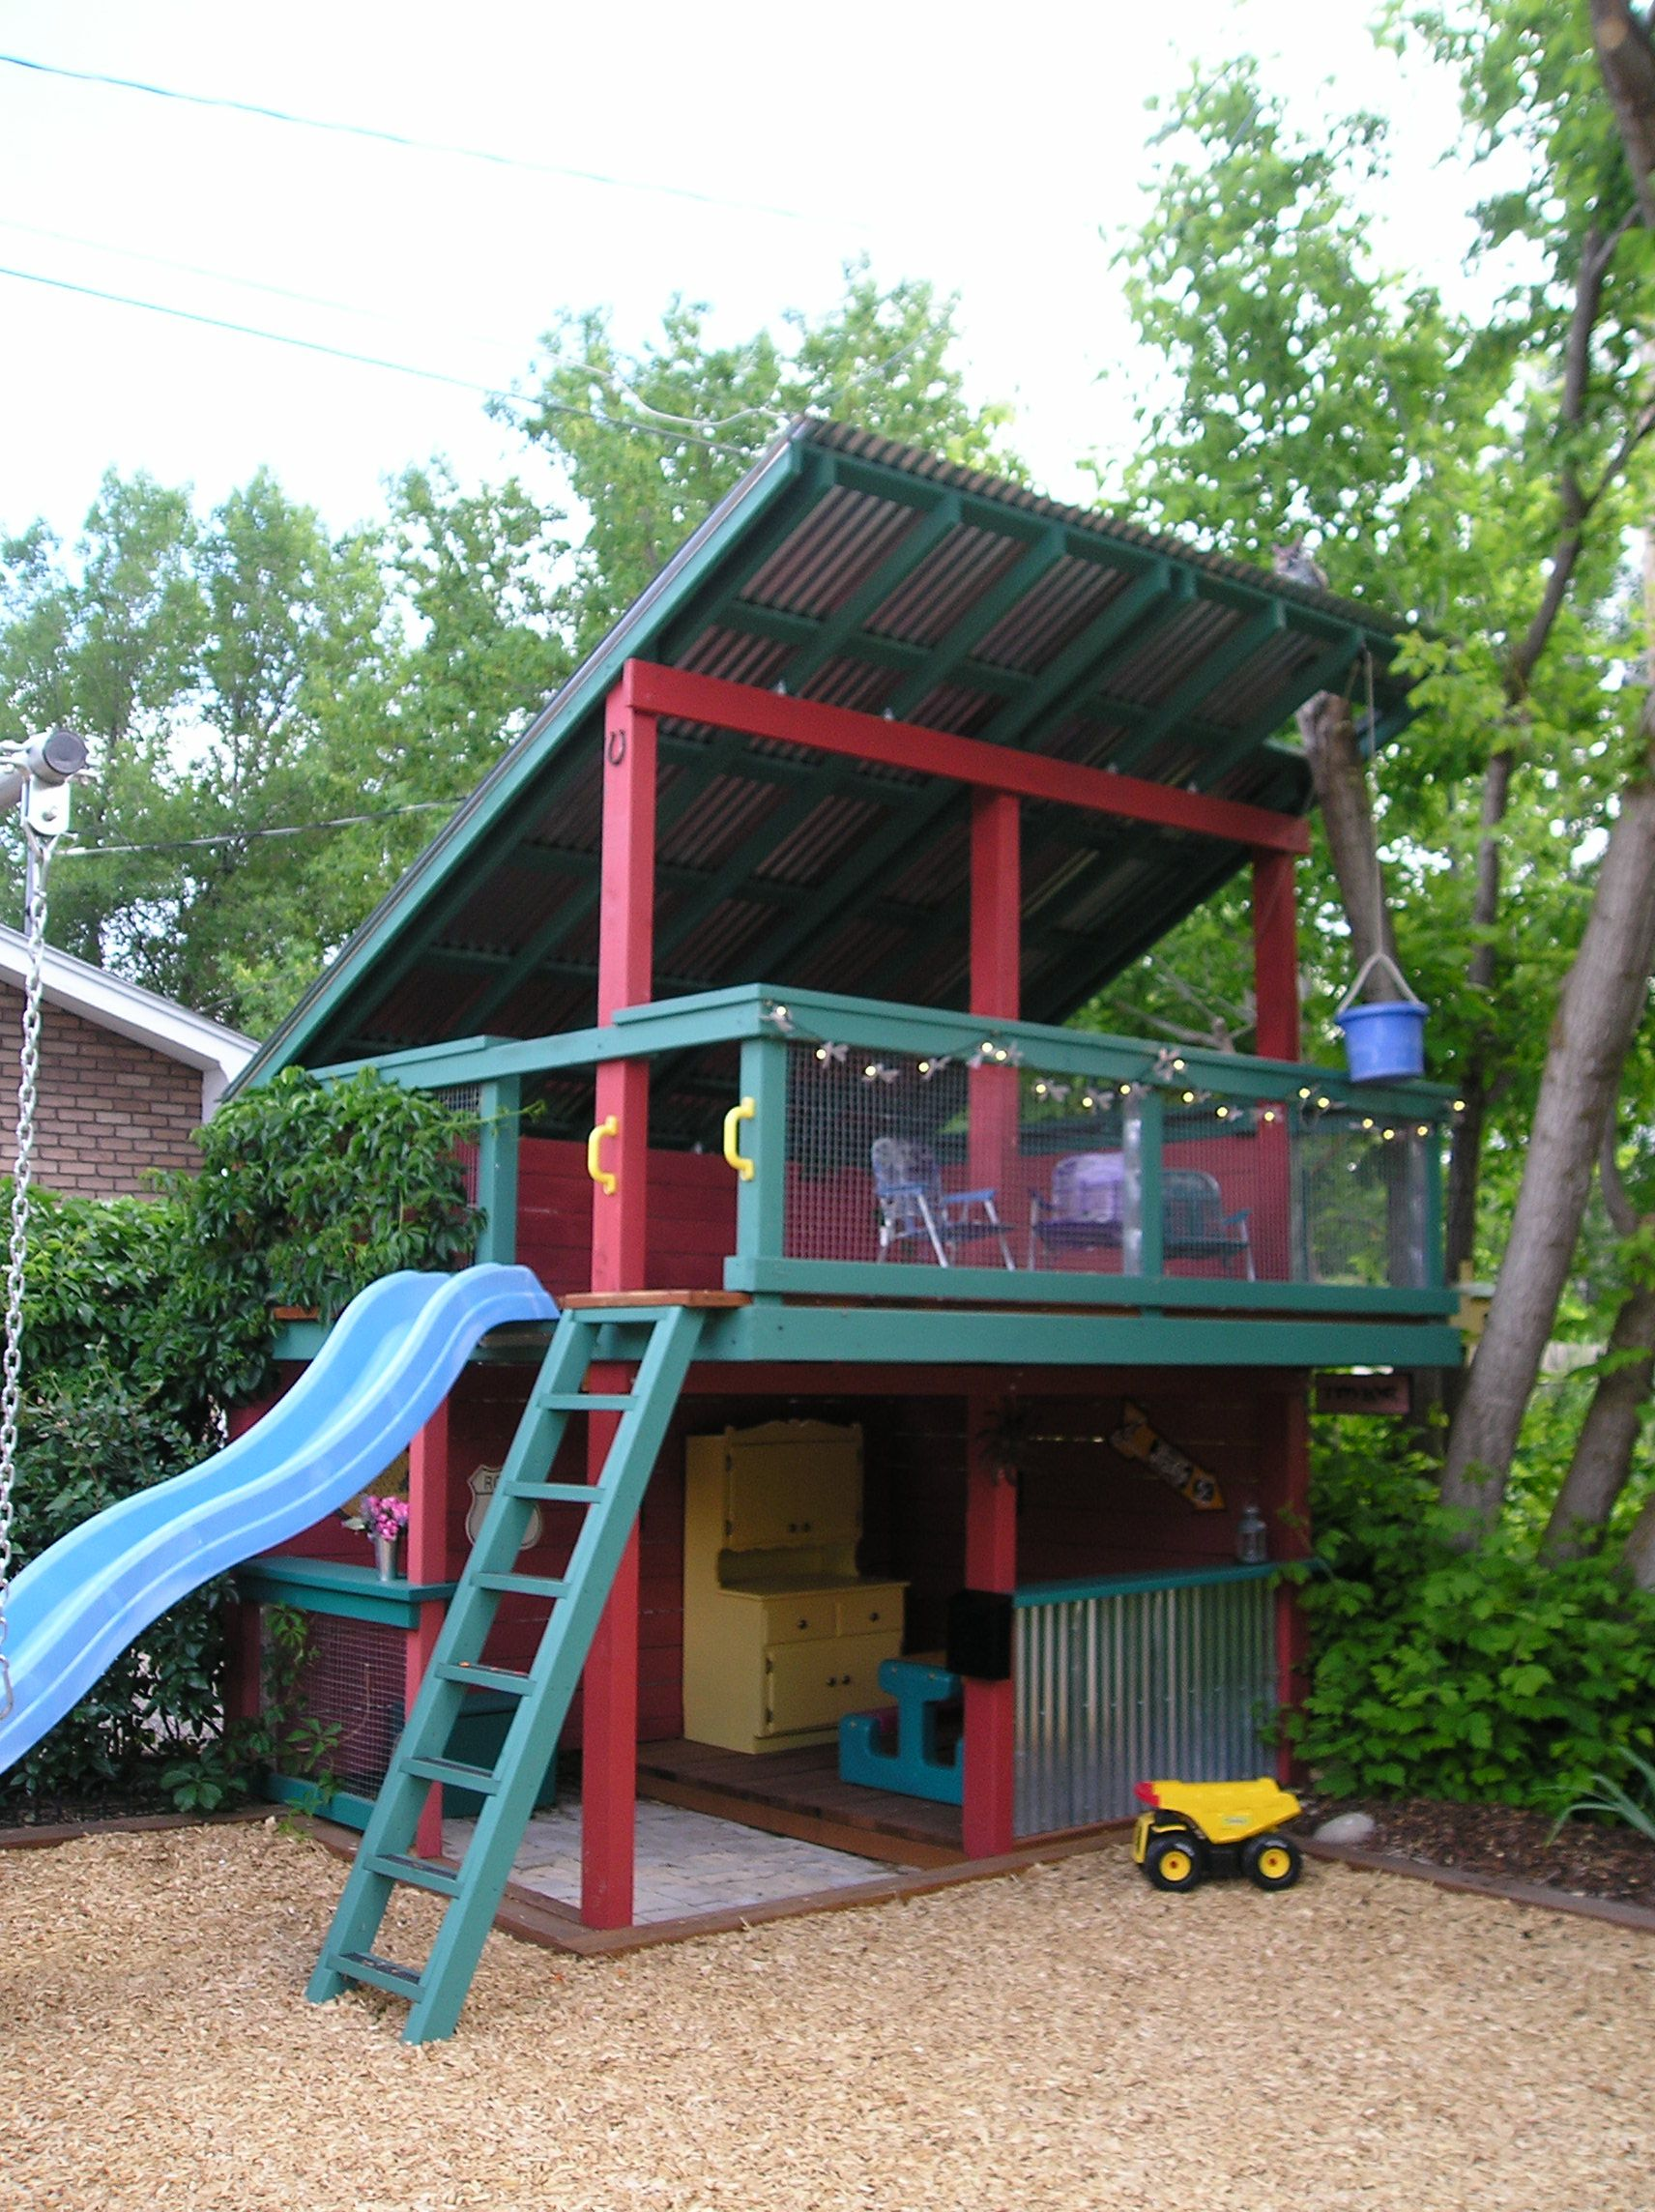 The kids grandkids would LOVE this Playhouses